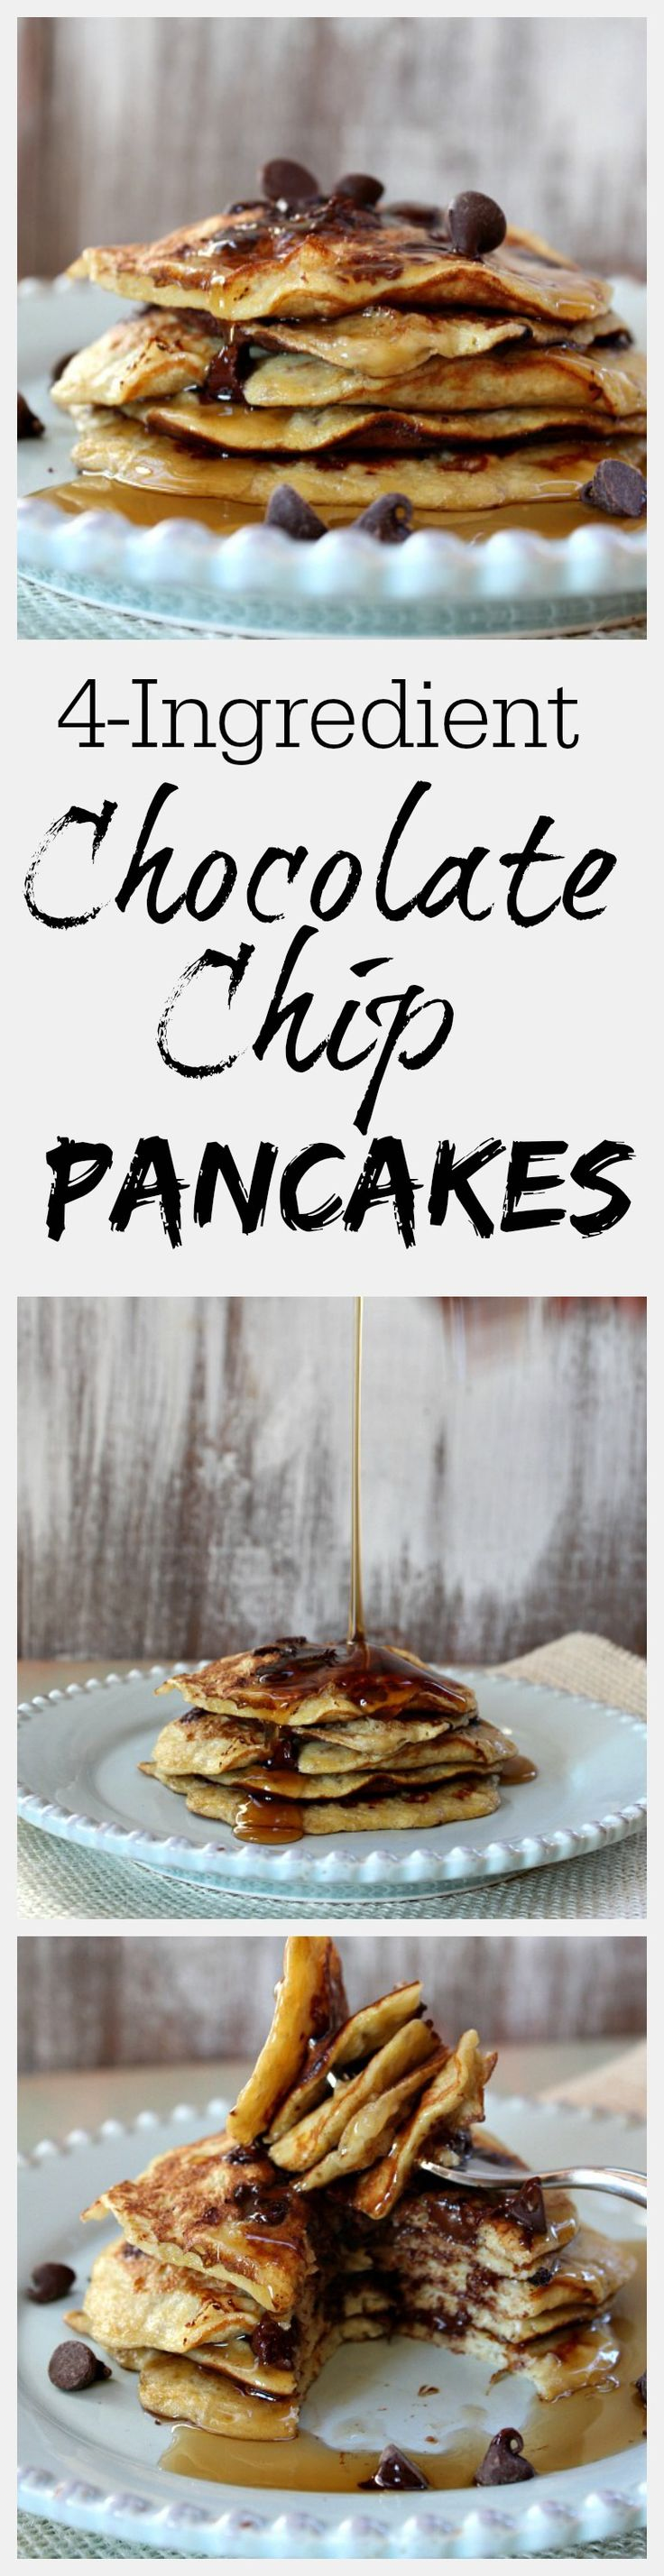 4-Ingredient Chocolate Chip Pancakes #weekend #breakfast #recipe